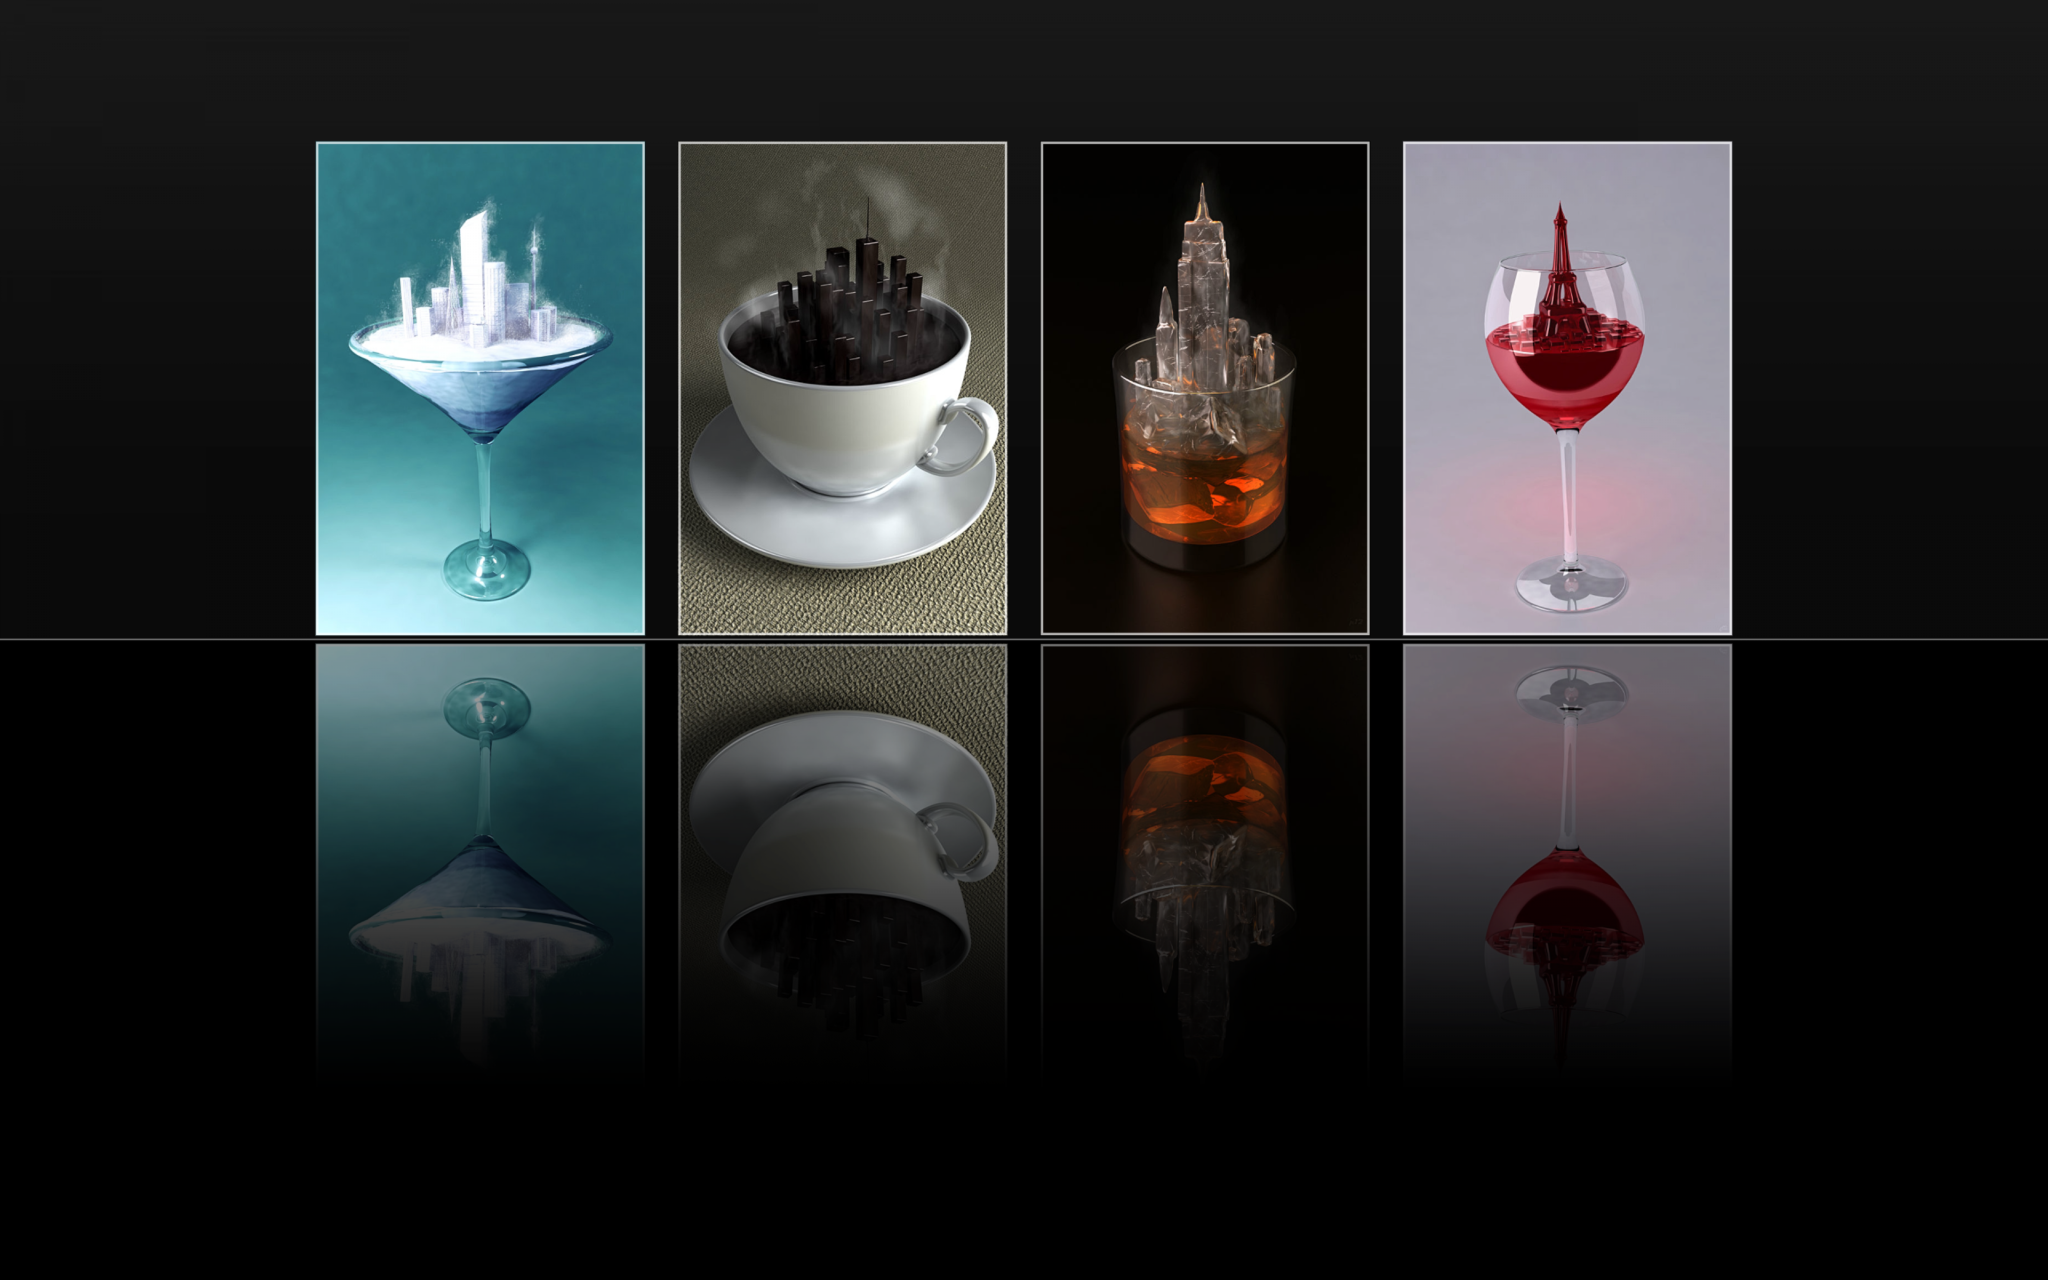 3840x2400-martini_digital_coffee_building_drink_building_in_the_drinks_art_whiskey_wine-8664